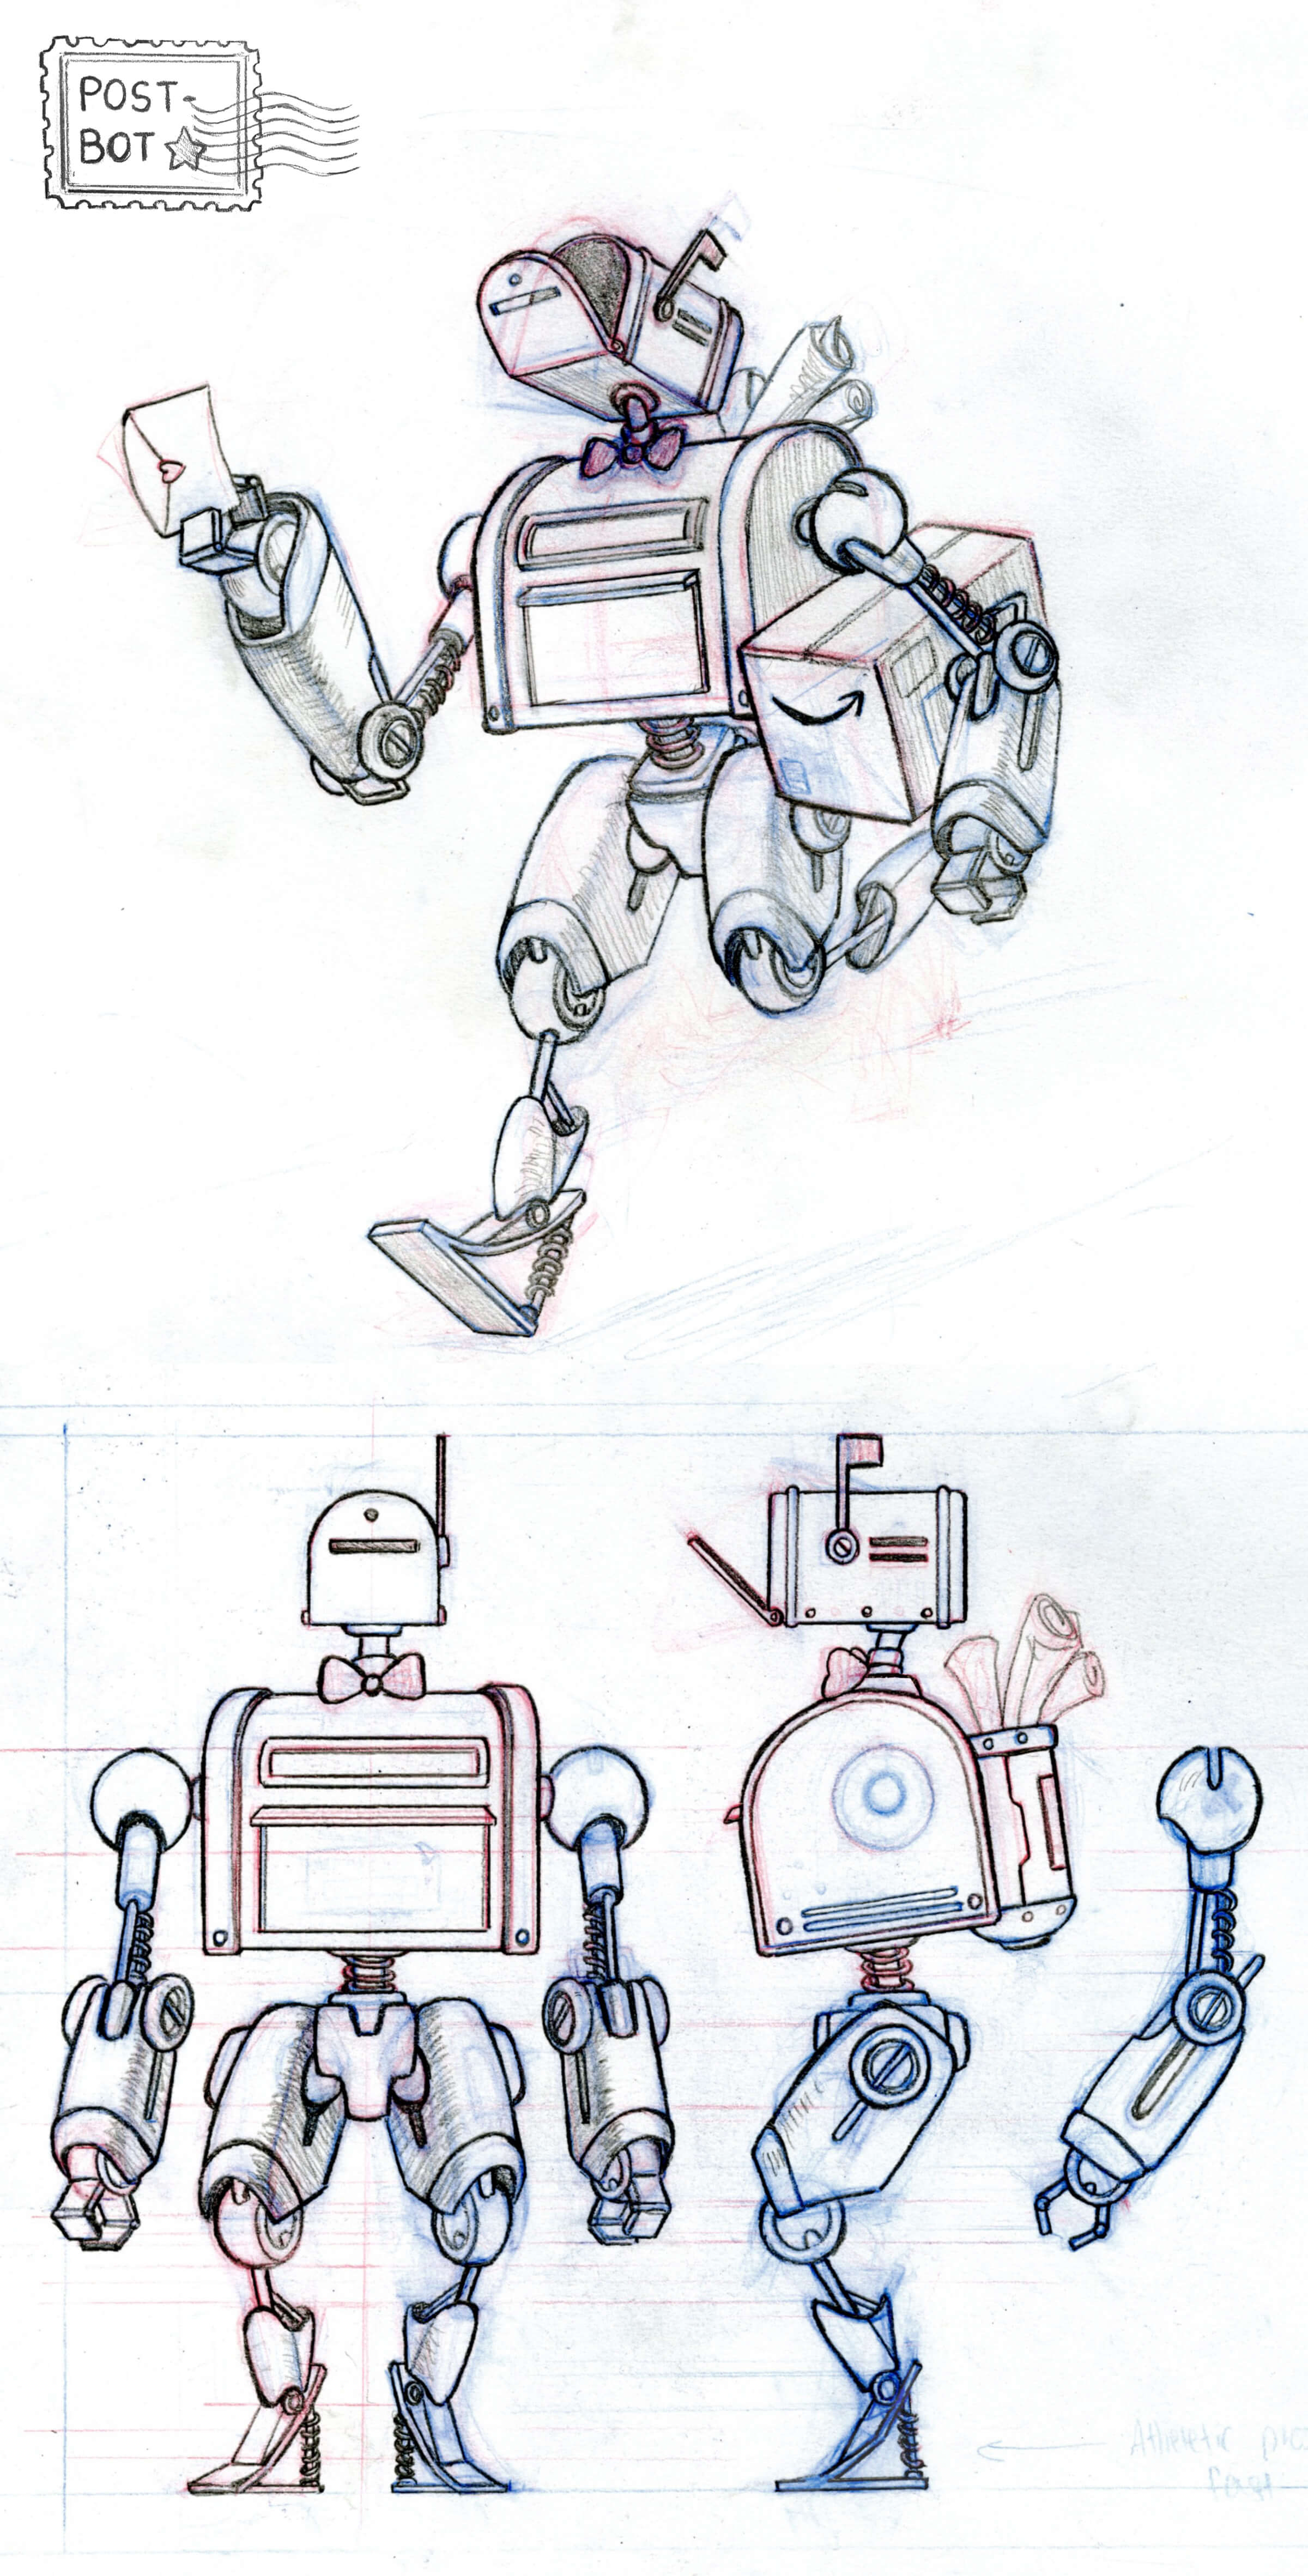 drawing of a robot called post-bot carrying an Amazon box and with a mailbox for a head